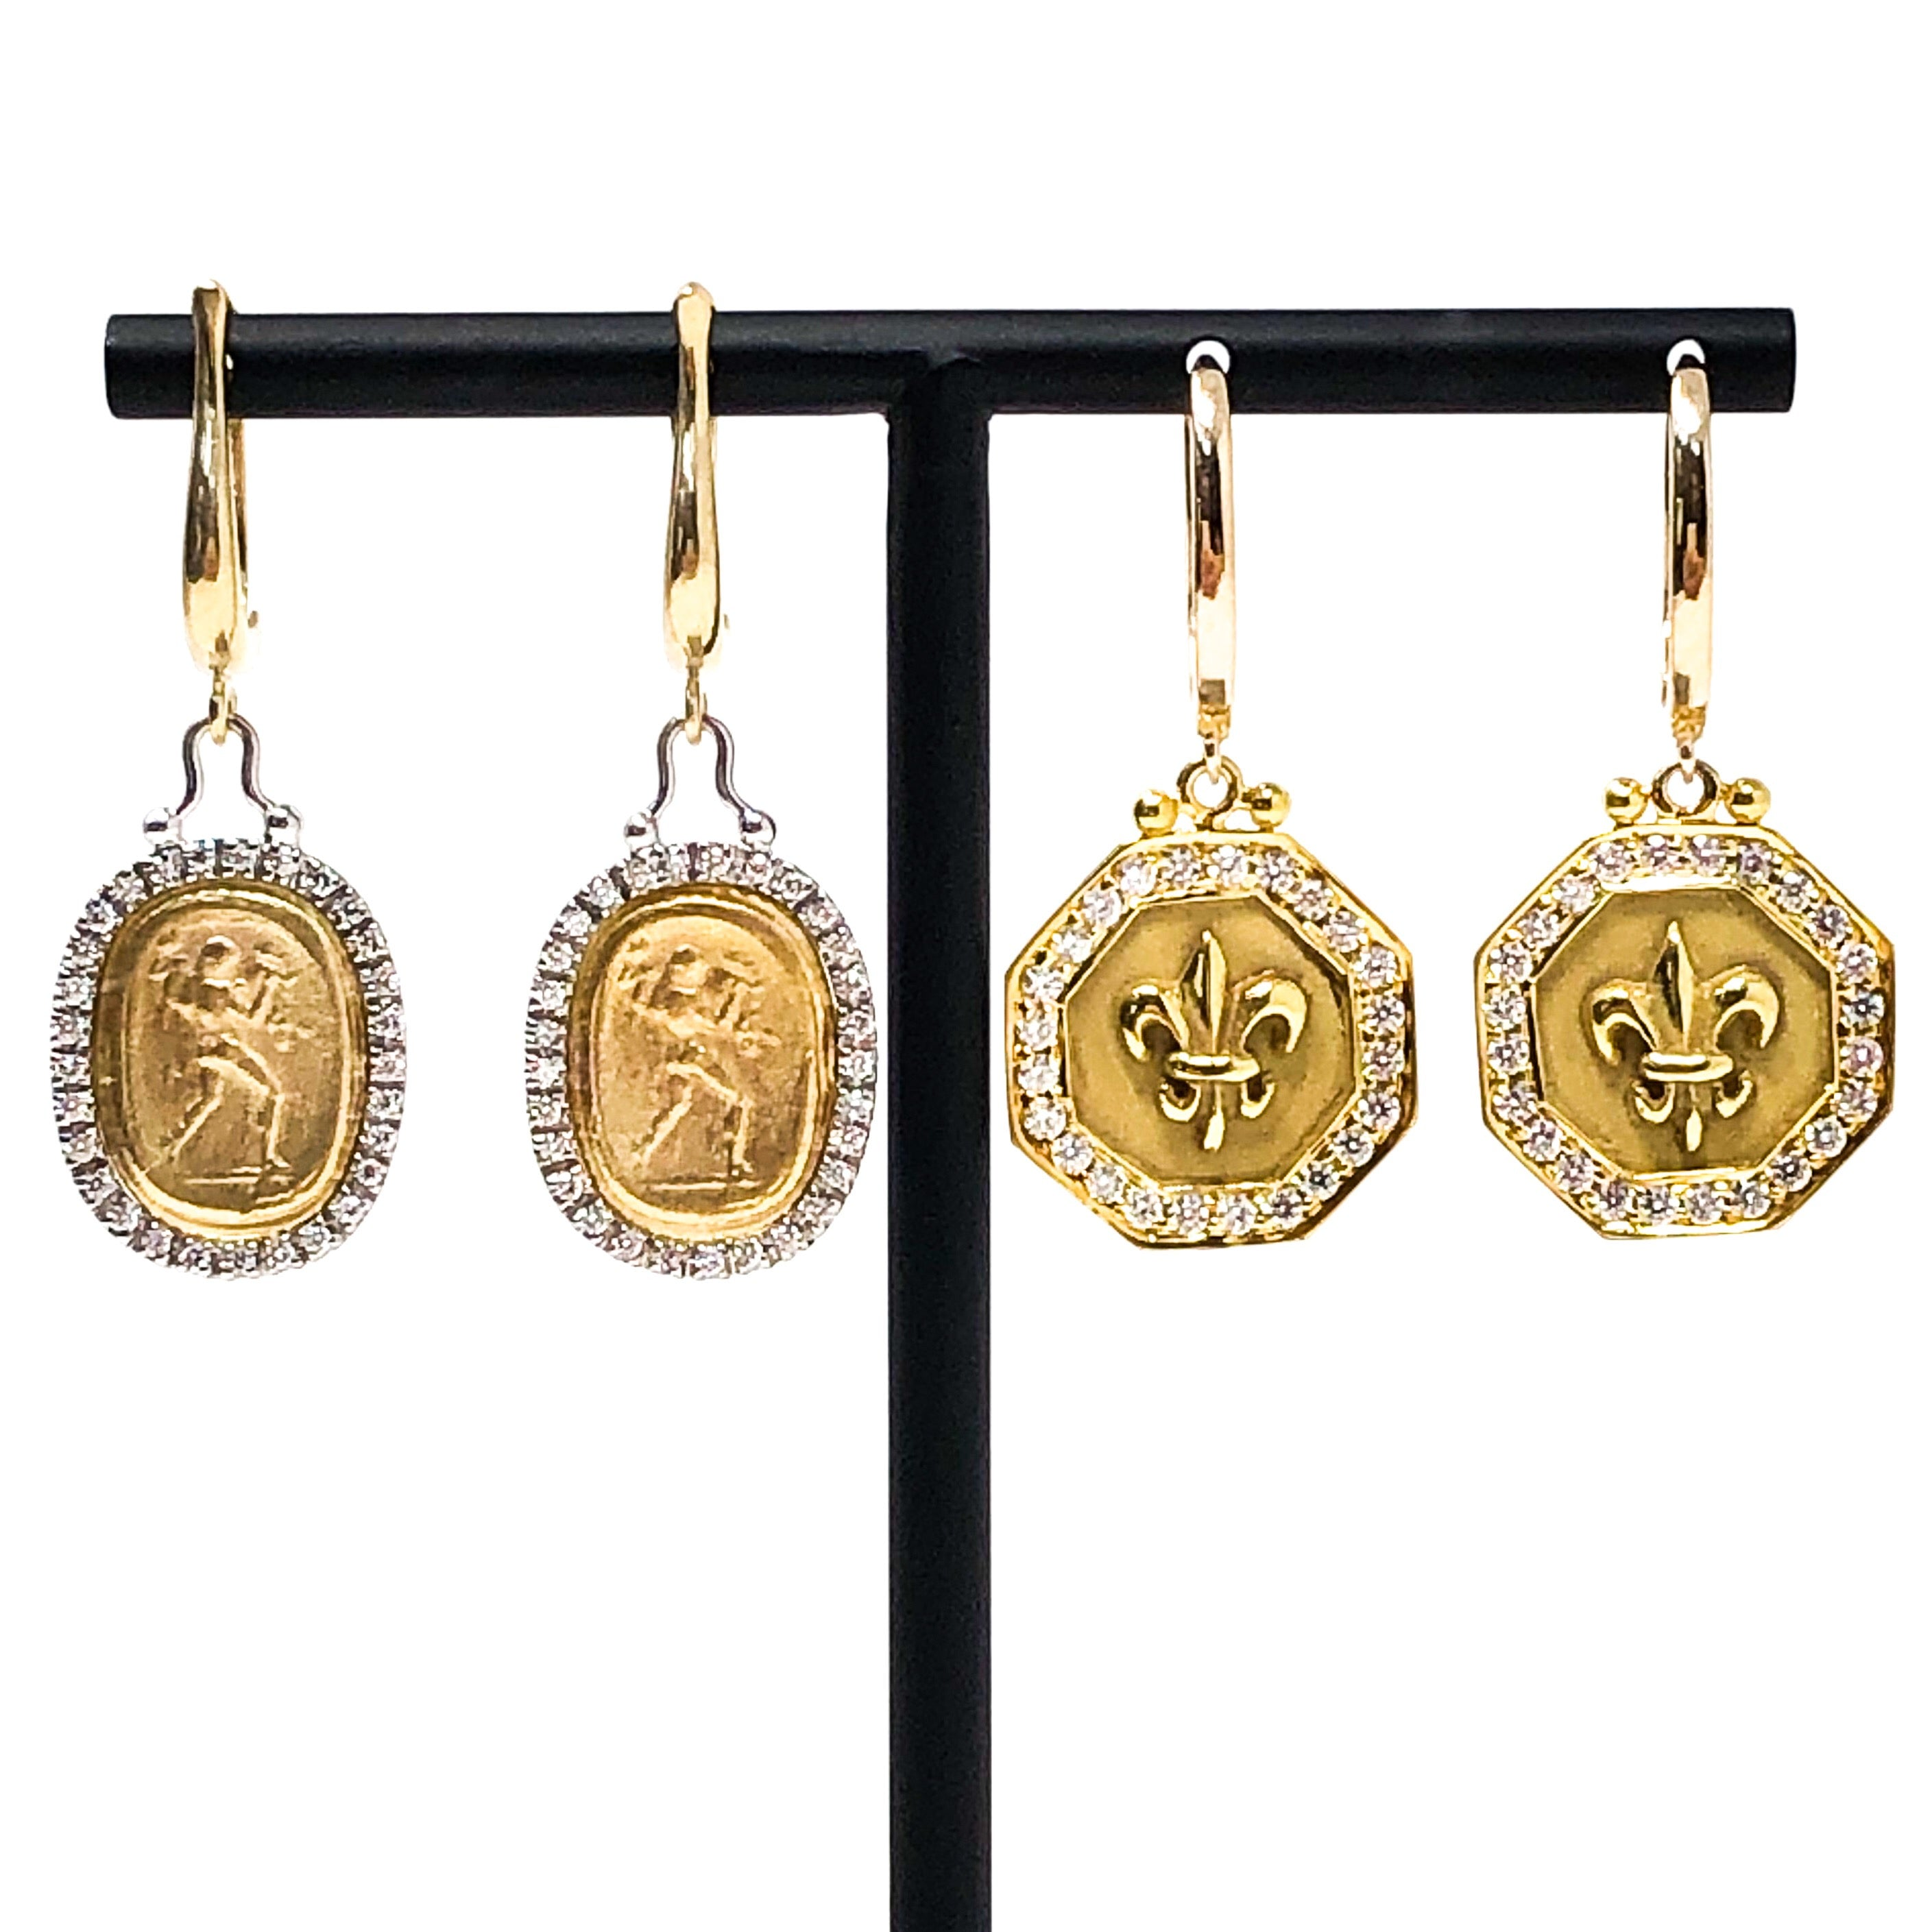 Roman Motif Earrings